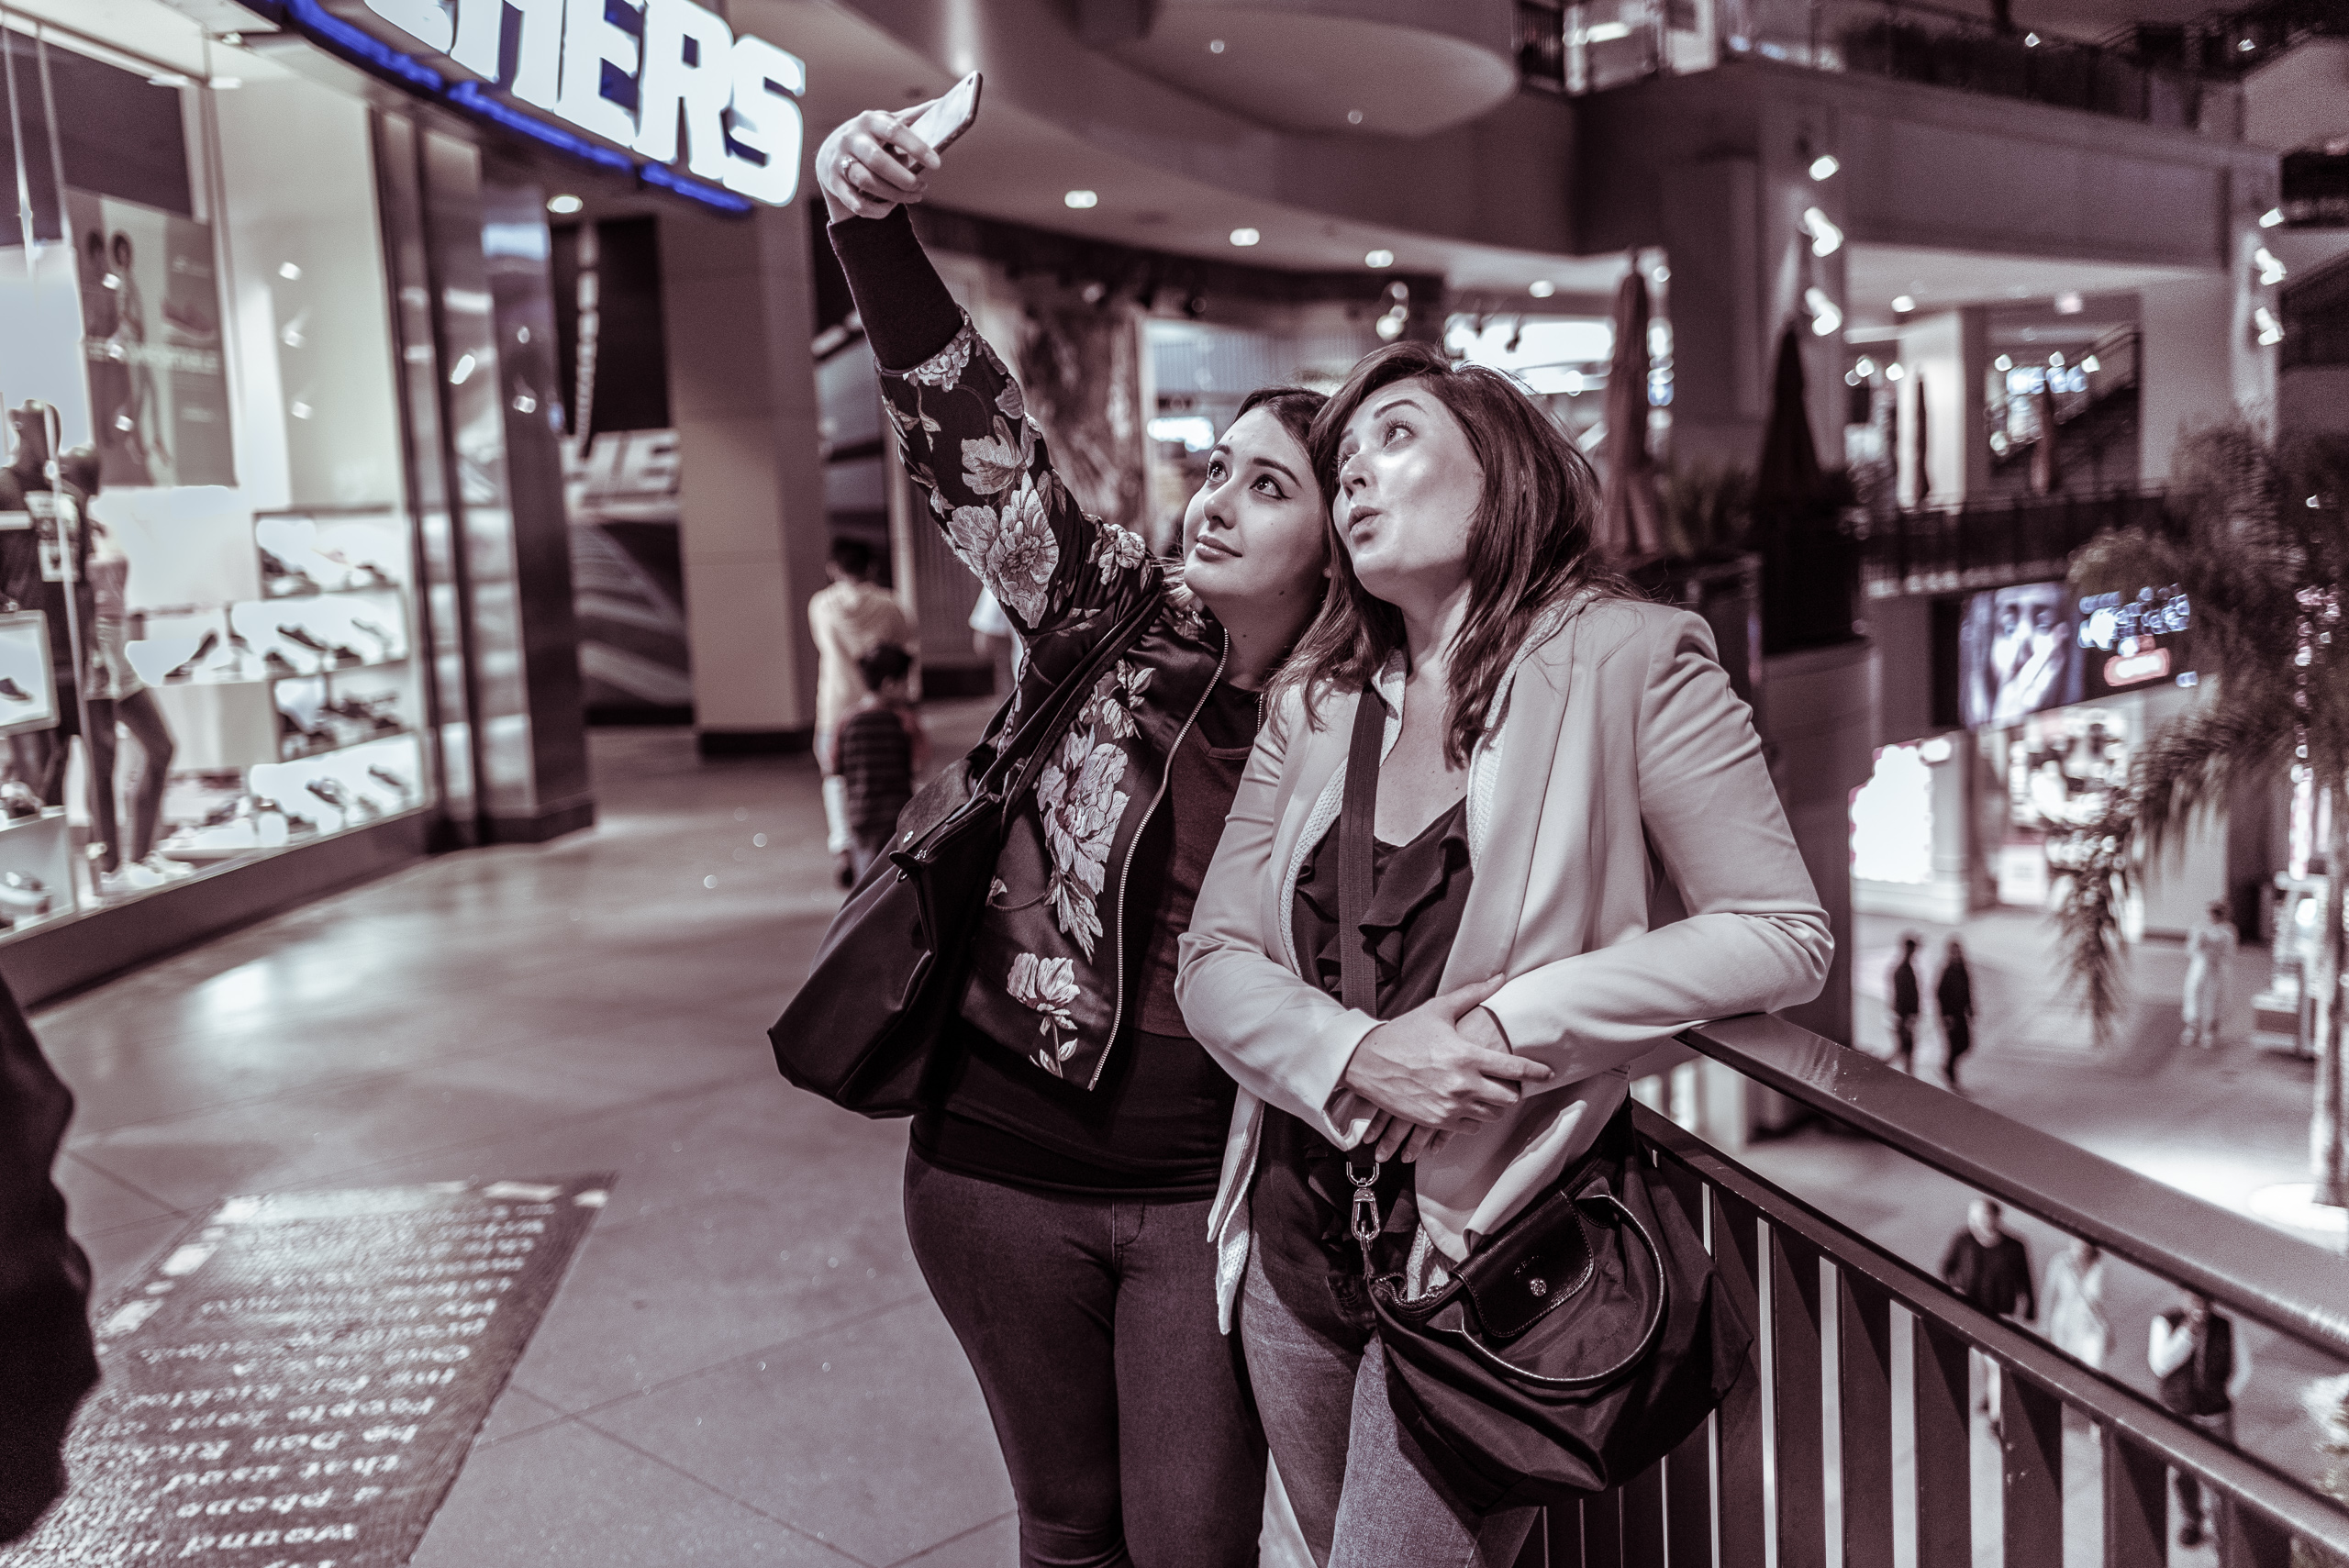 two women stand on a second level deck at the Hollywood & Highland center. In front and to the side of them is a large, bright window and sign from a Sketchers store. One of them holds a cell phone up in the air and they both smile for the high-angle selfie that includes people walking around on ground level below them.